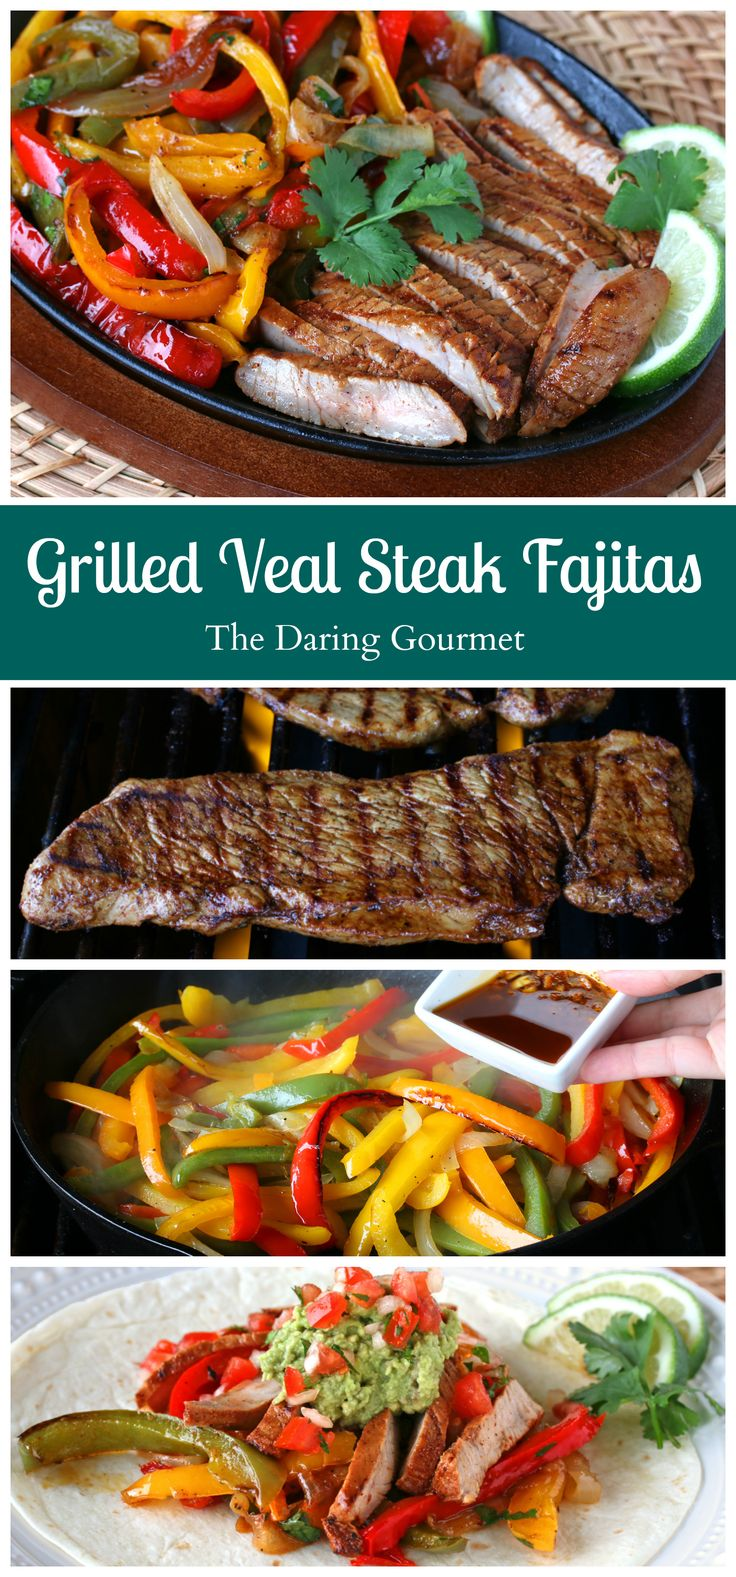 Grilled Veal Steak Fajitas.  daringgourmet.com